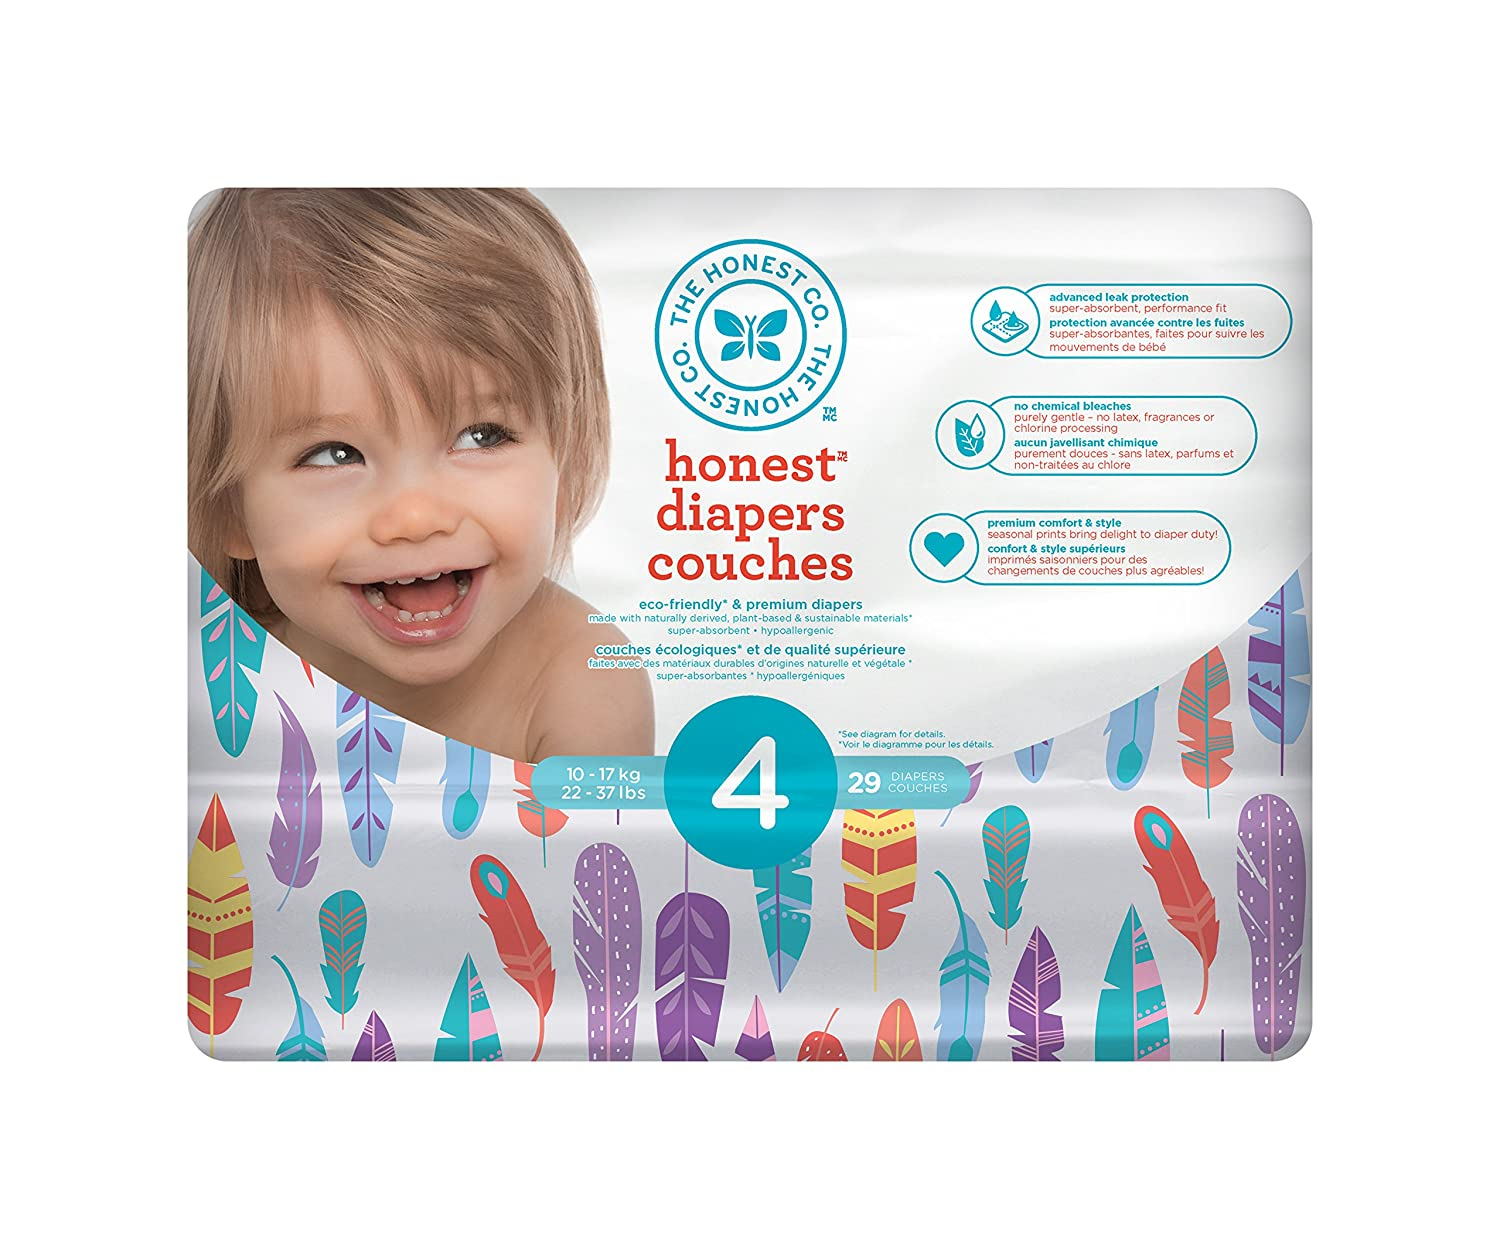 34 Count size 3 The Honest Company Disposable diapers rose blossom print polybag